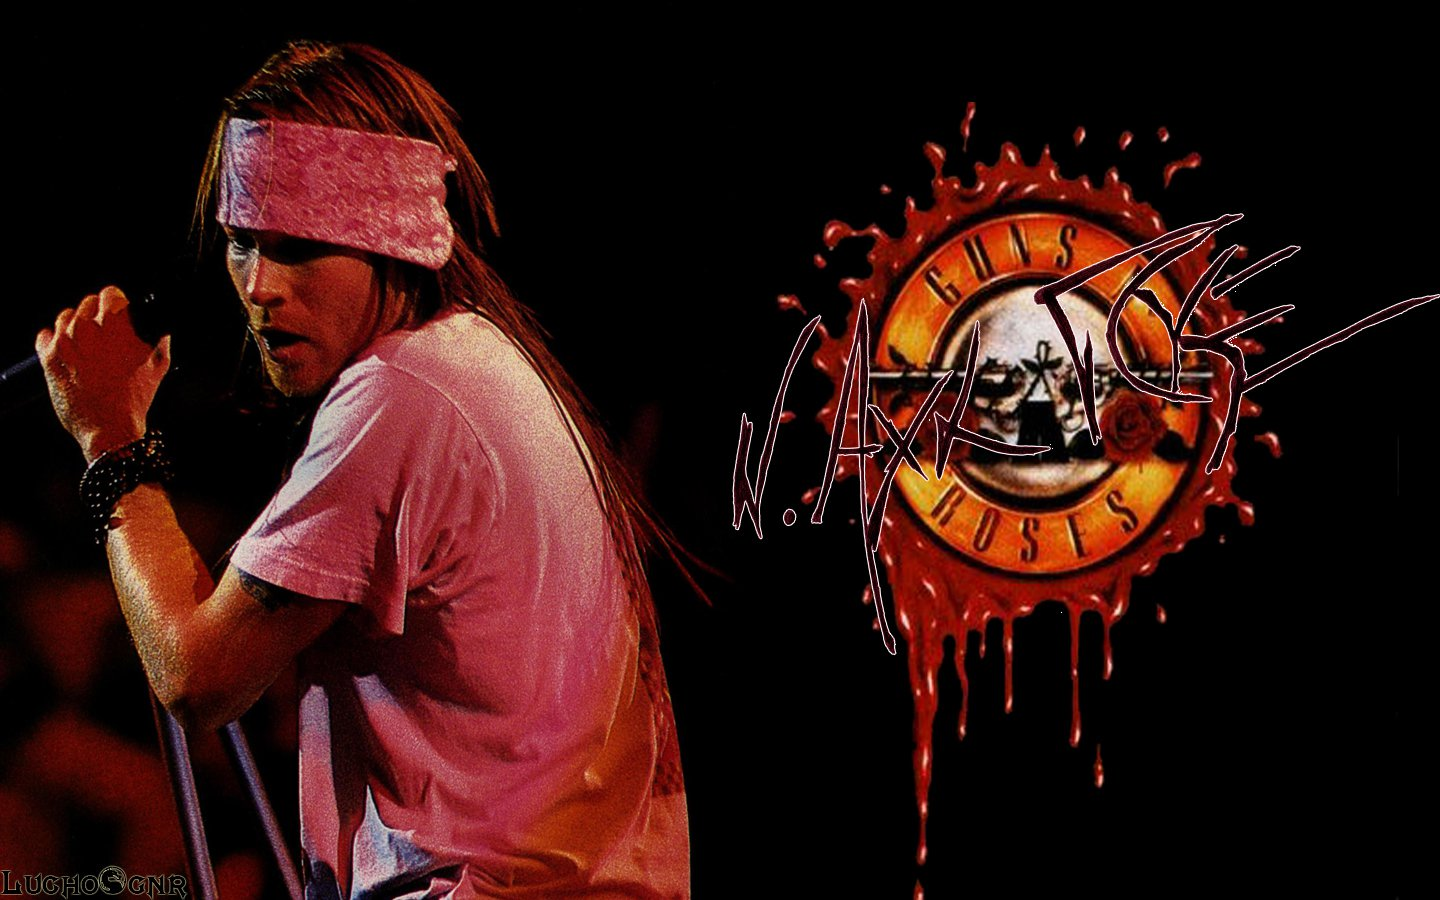 78 ] Axl Rose Wallpaper On WallpaperSafari